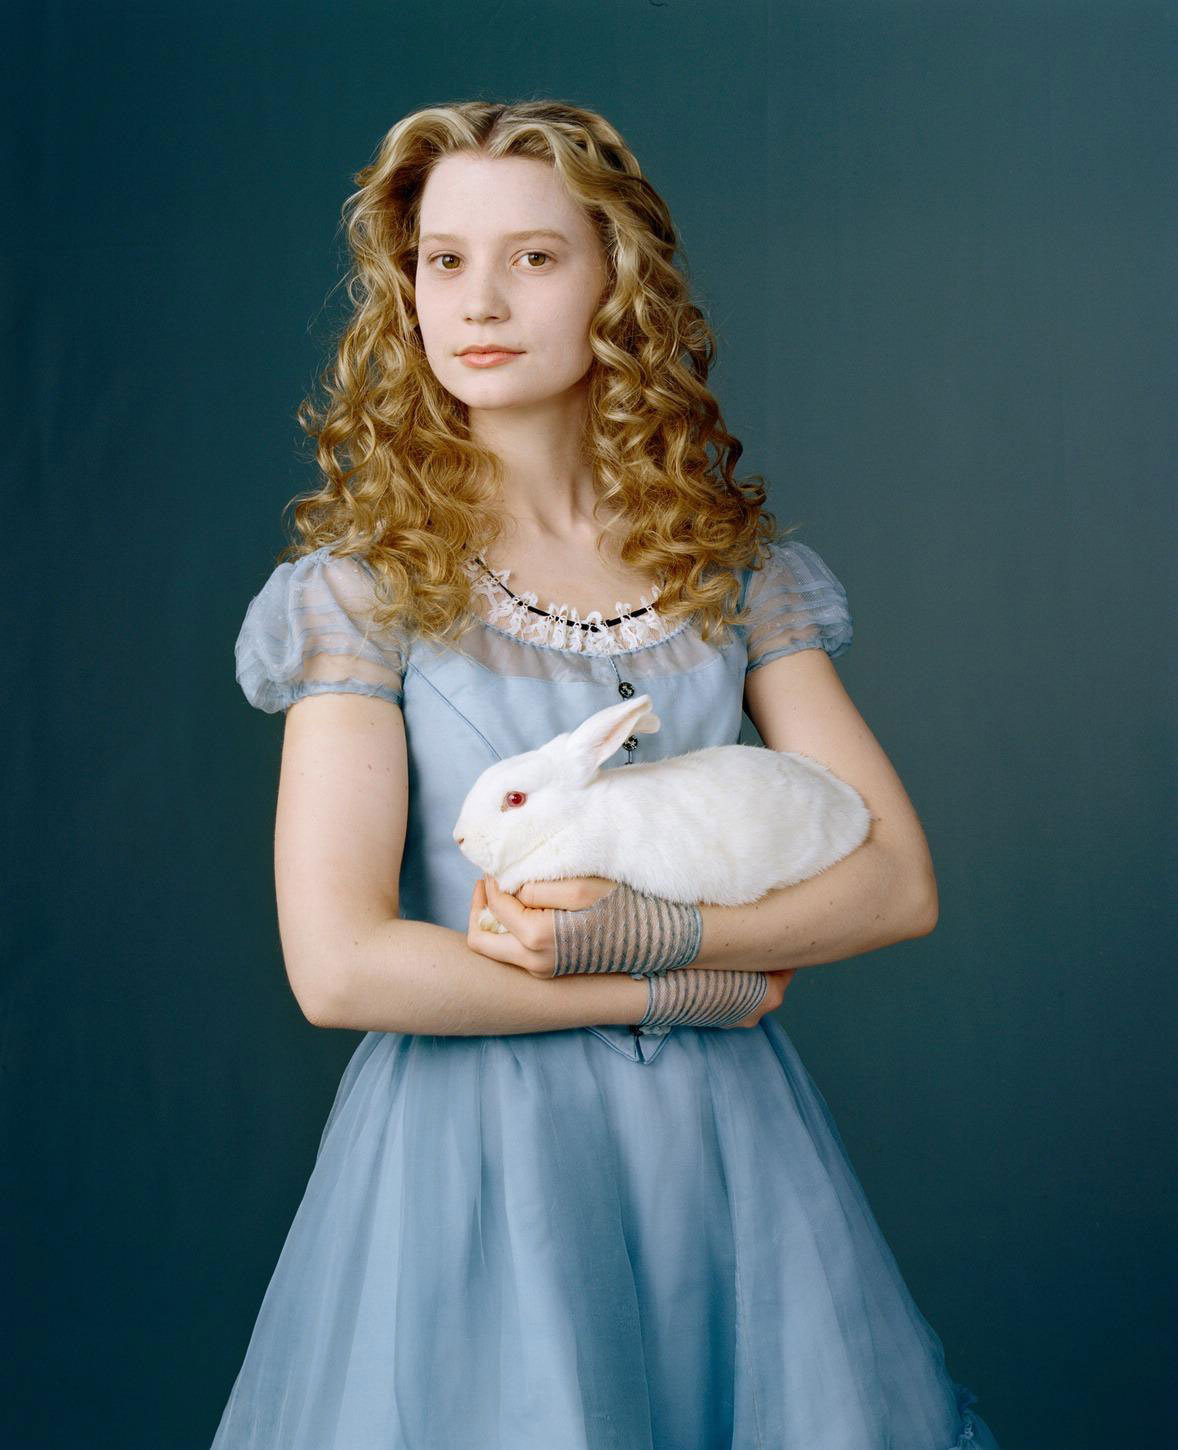 Alice-in-Wonderland-alice-in-wonderland-2010-16094071-1178-1450